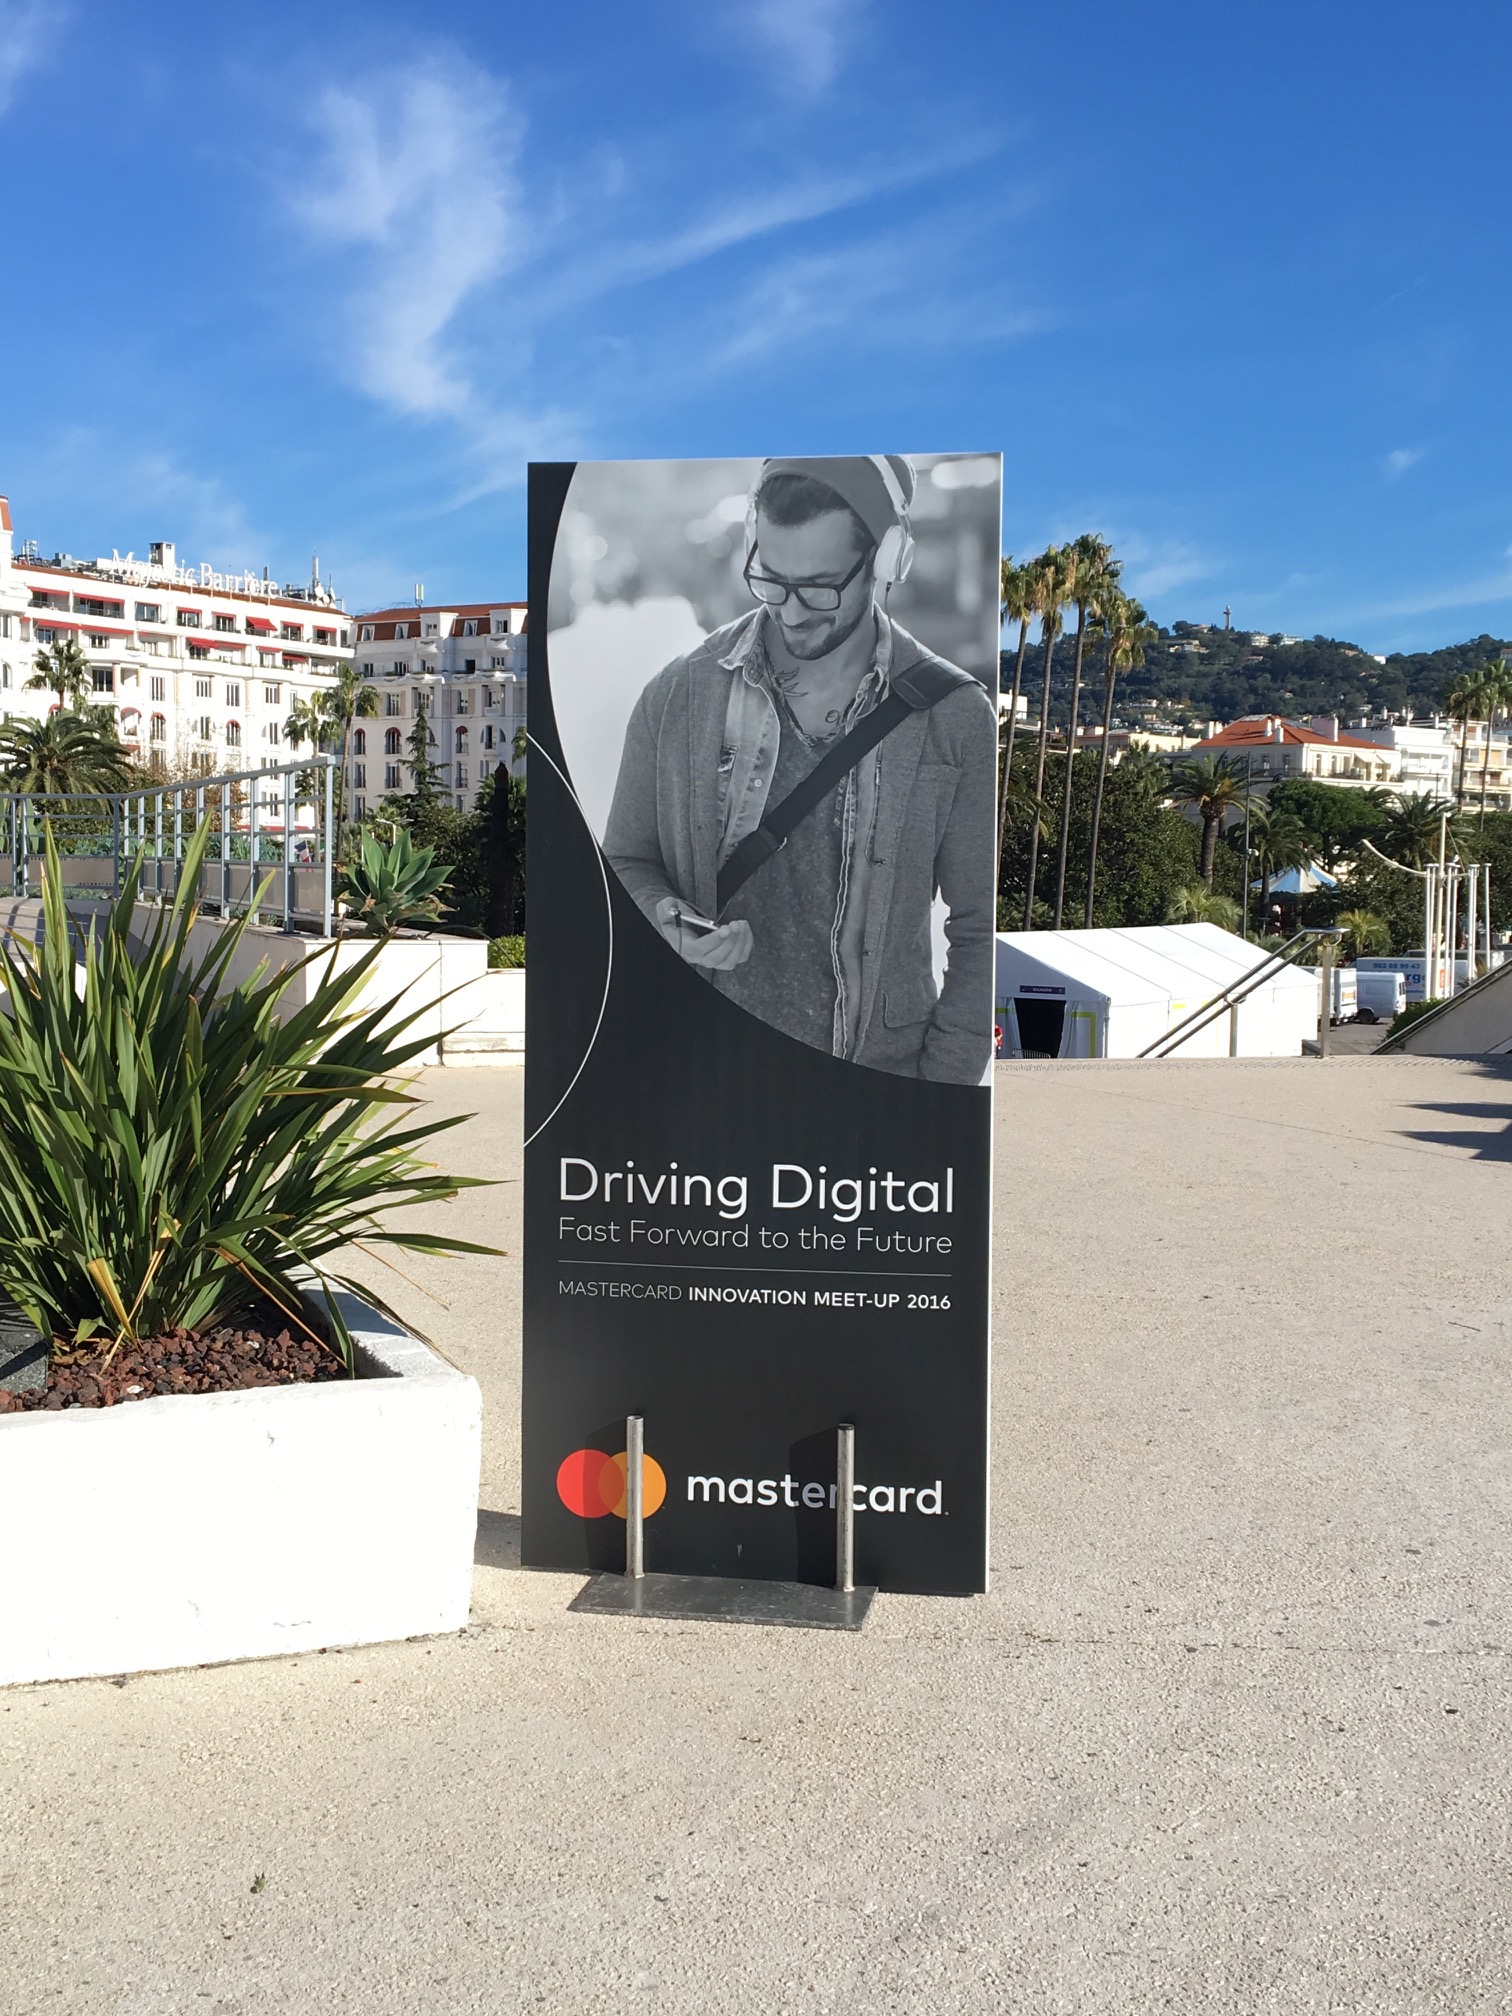 mastercard-trustech-cannes-2016-2